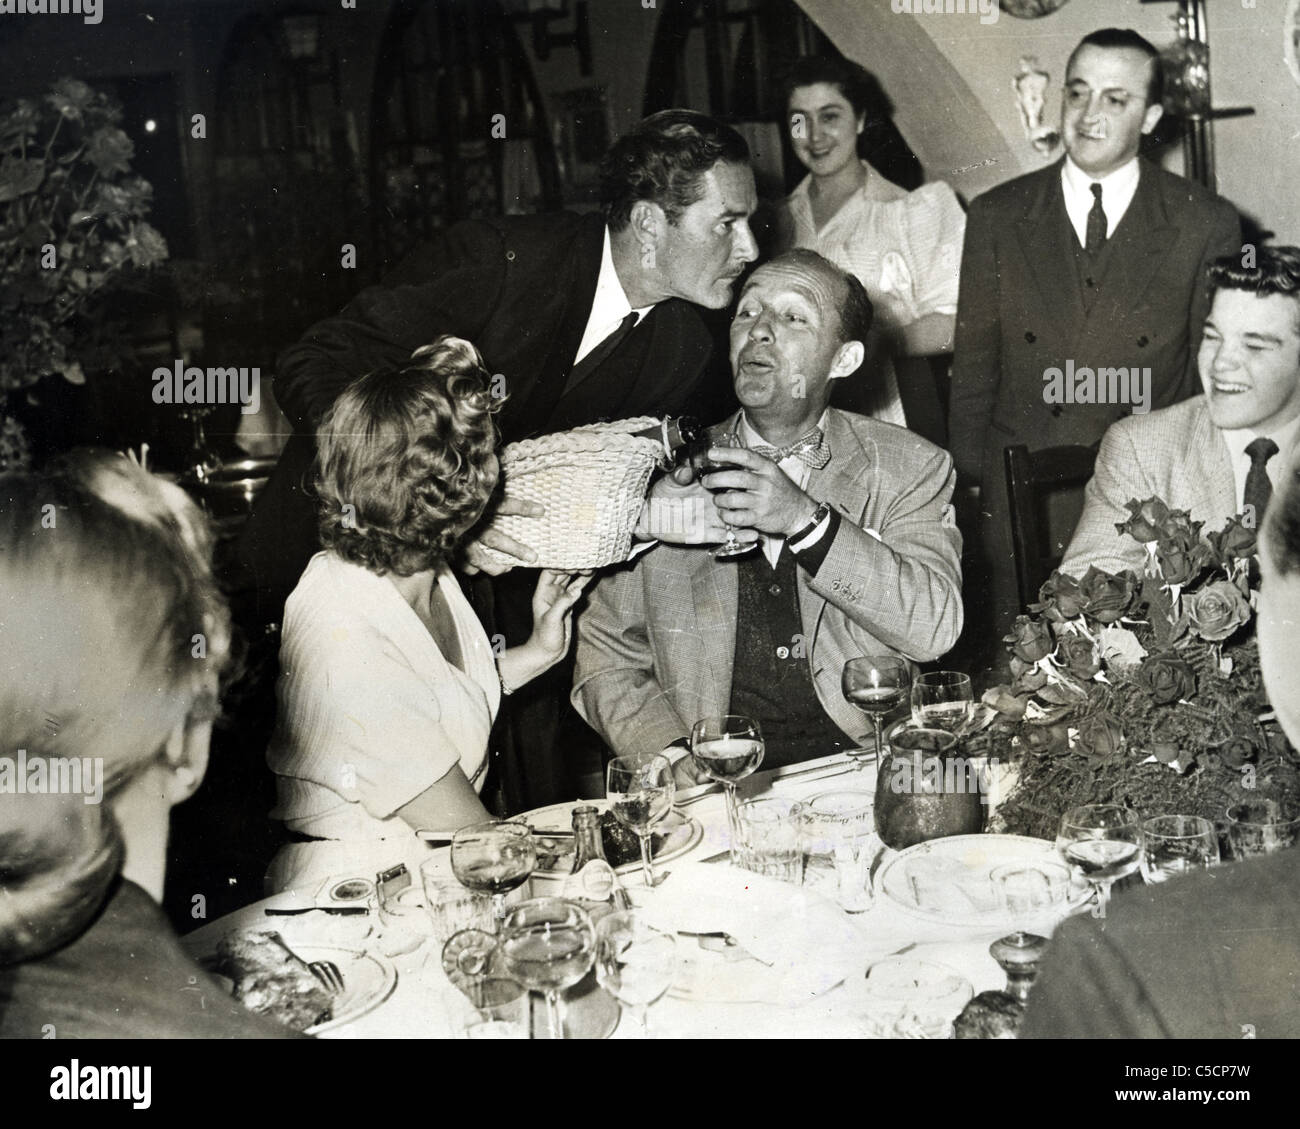 errol-flynn-with-bing-crosby-at-hollywood-restaurant-about-1964-others-C5CP7W.jpg